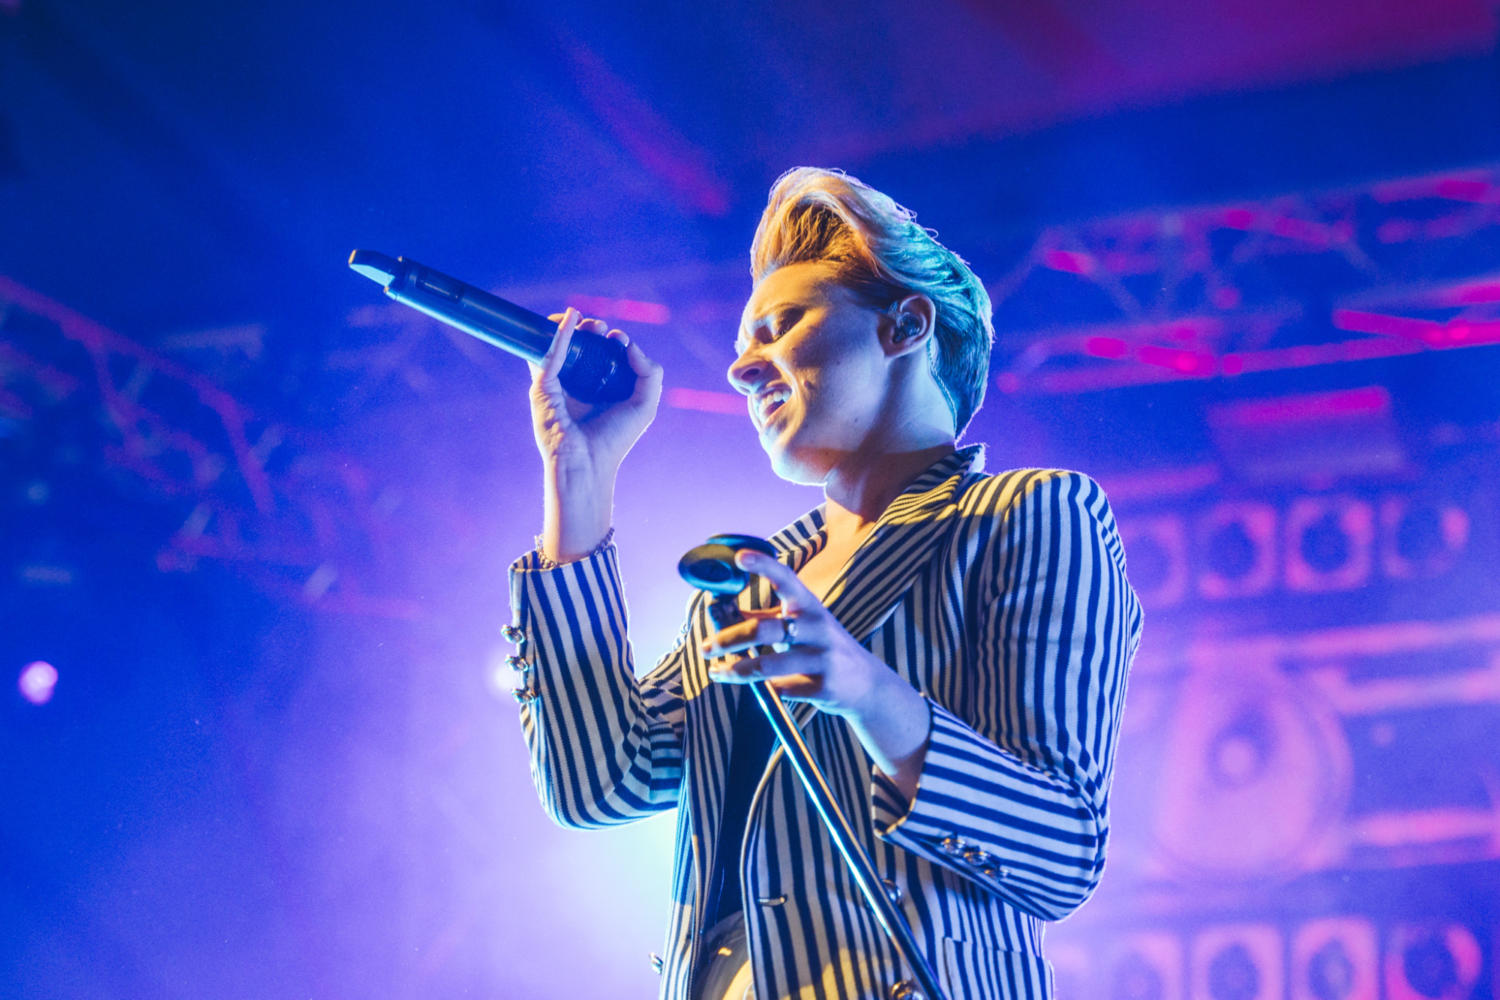 La Roux gives electro-pop a striking edge at Latitude 2015